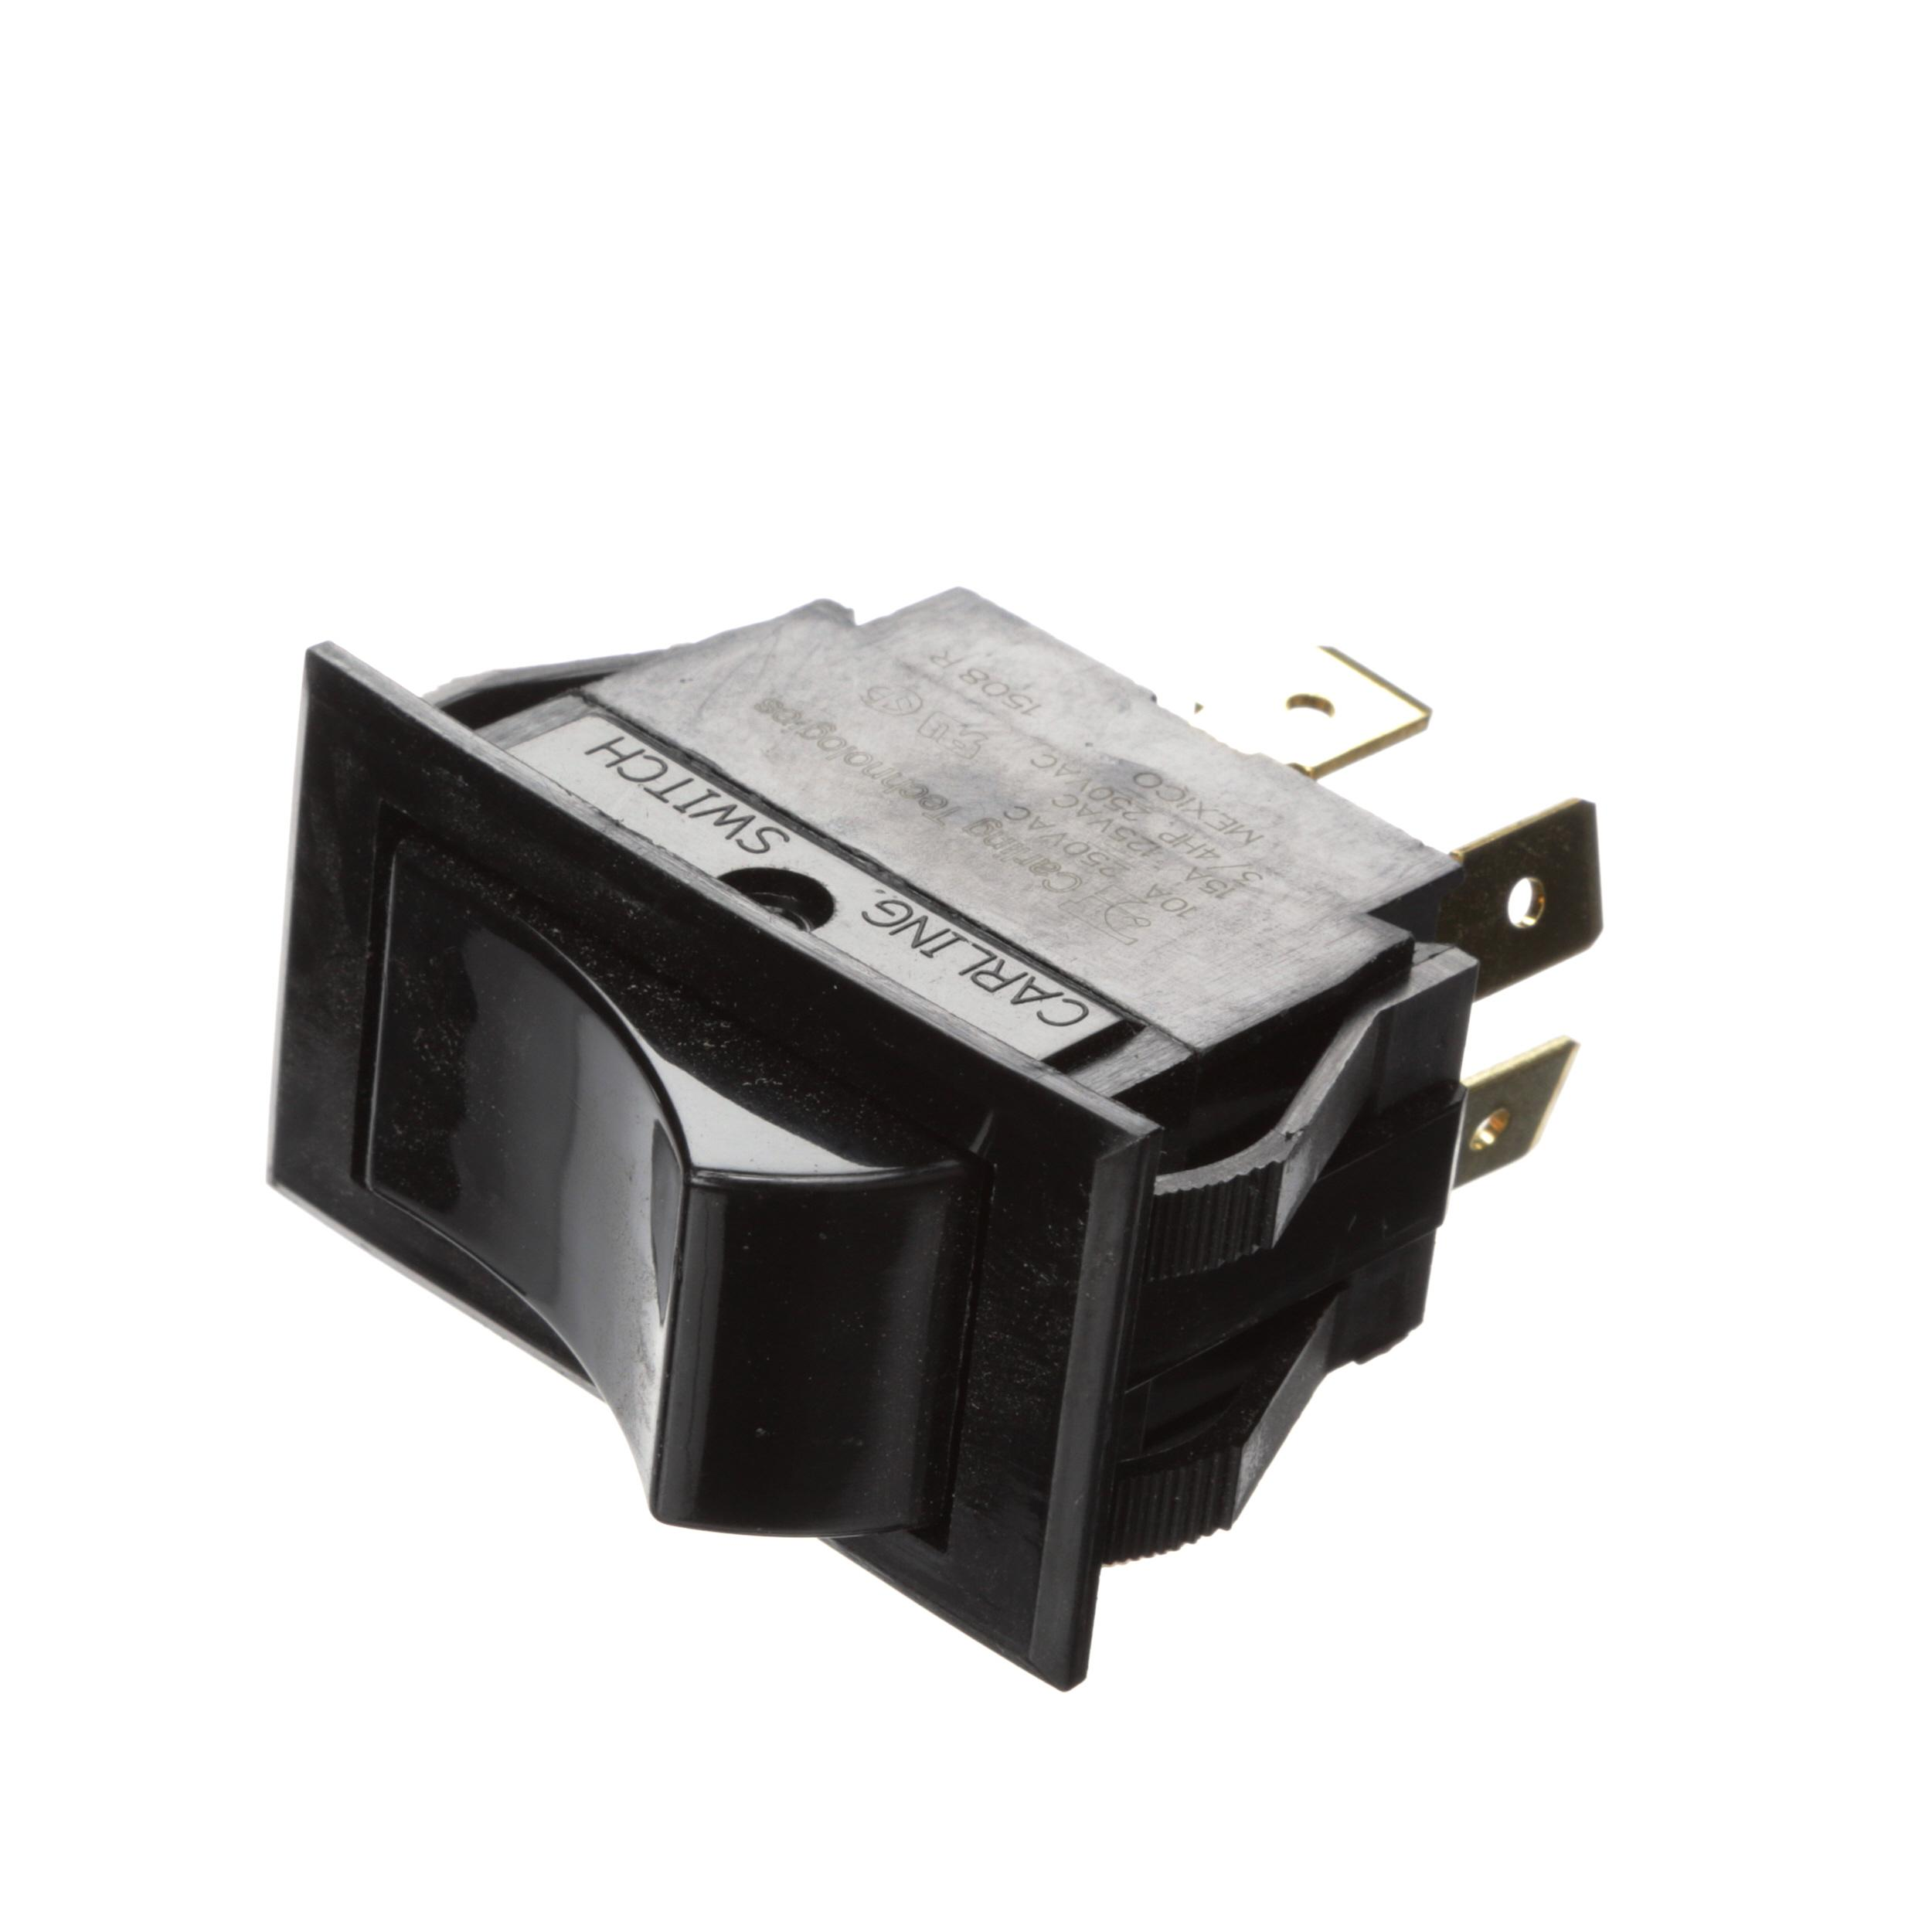 SOUTHBEND RANGE SWITCH, BLACK SMOOTHED(POWER)